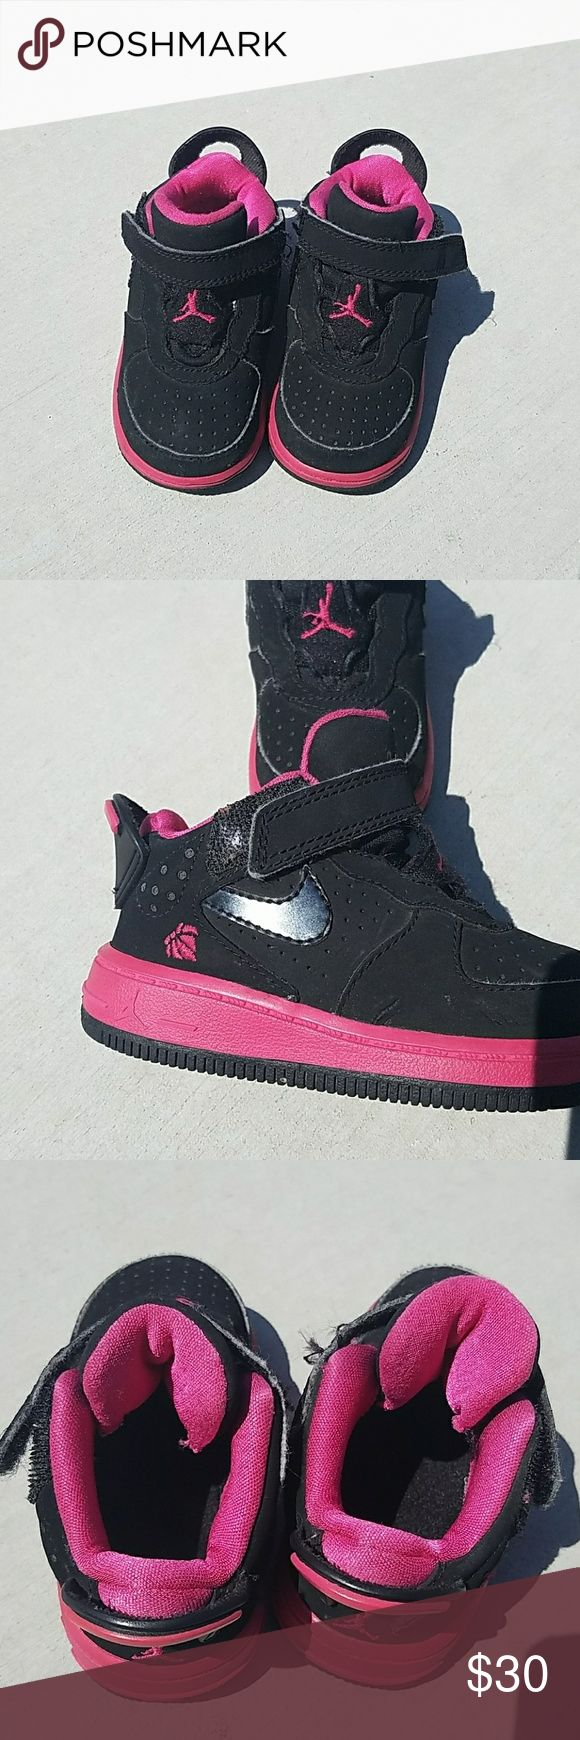 ❤Valentine's Day Jordans Limited Edition Valentine Jordan's in good condition! There is slight cracking on front toes but not very noticeable because of the color. Very cute!!  Size 5c toddler jordans Shoes